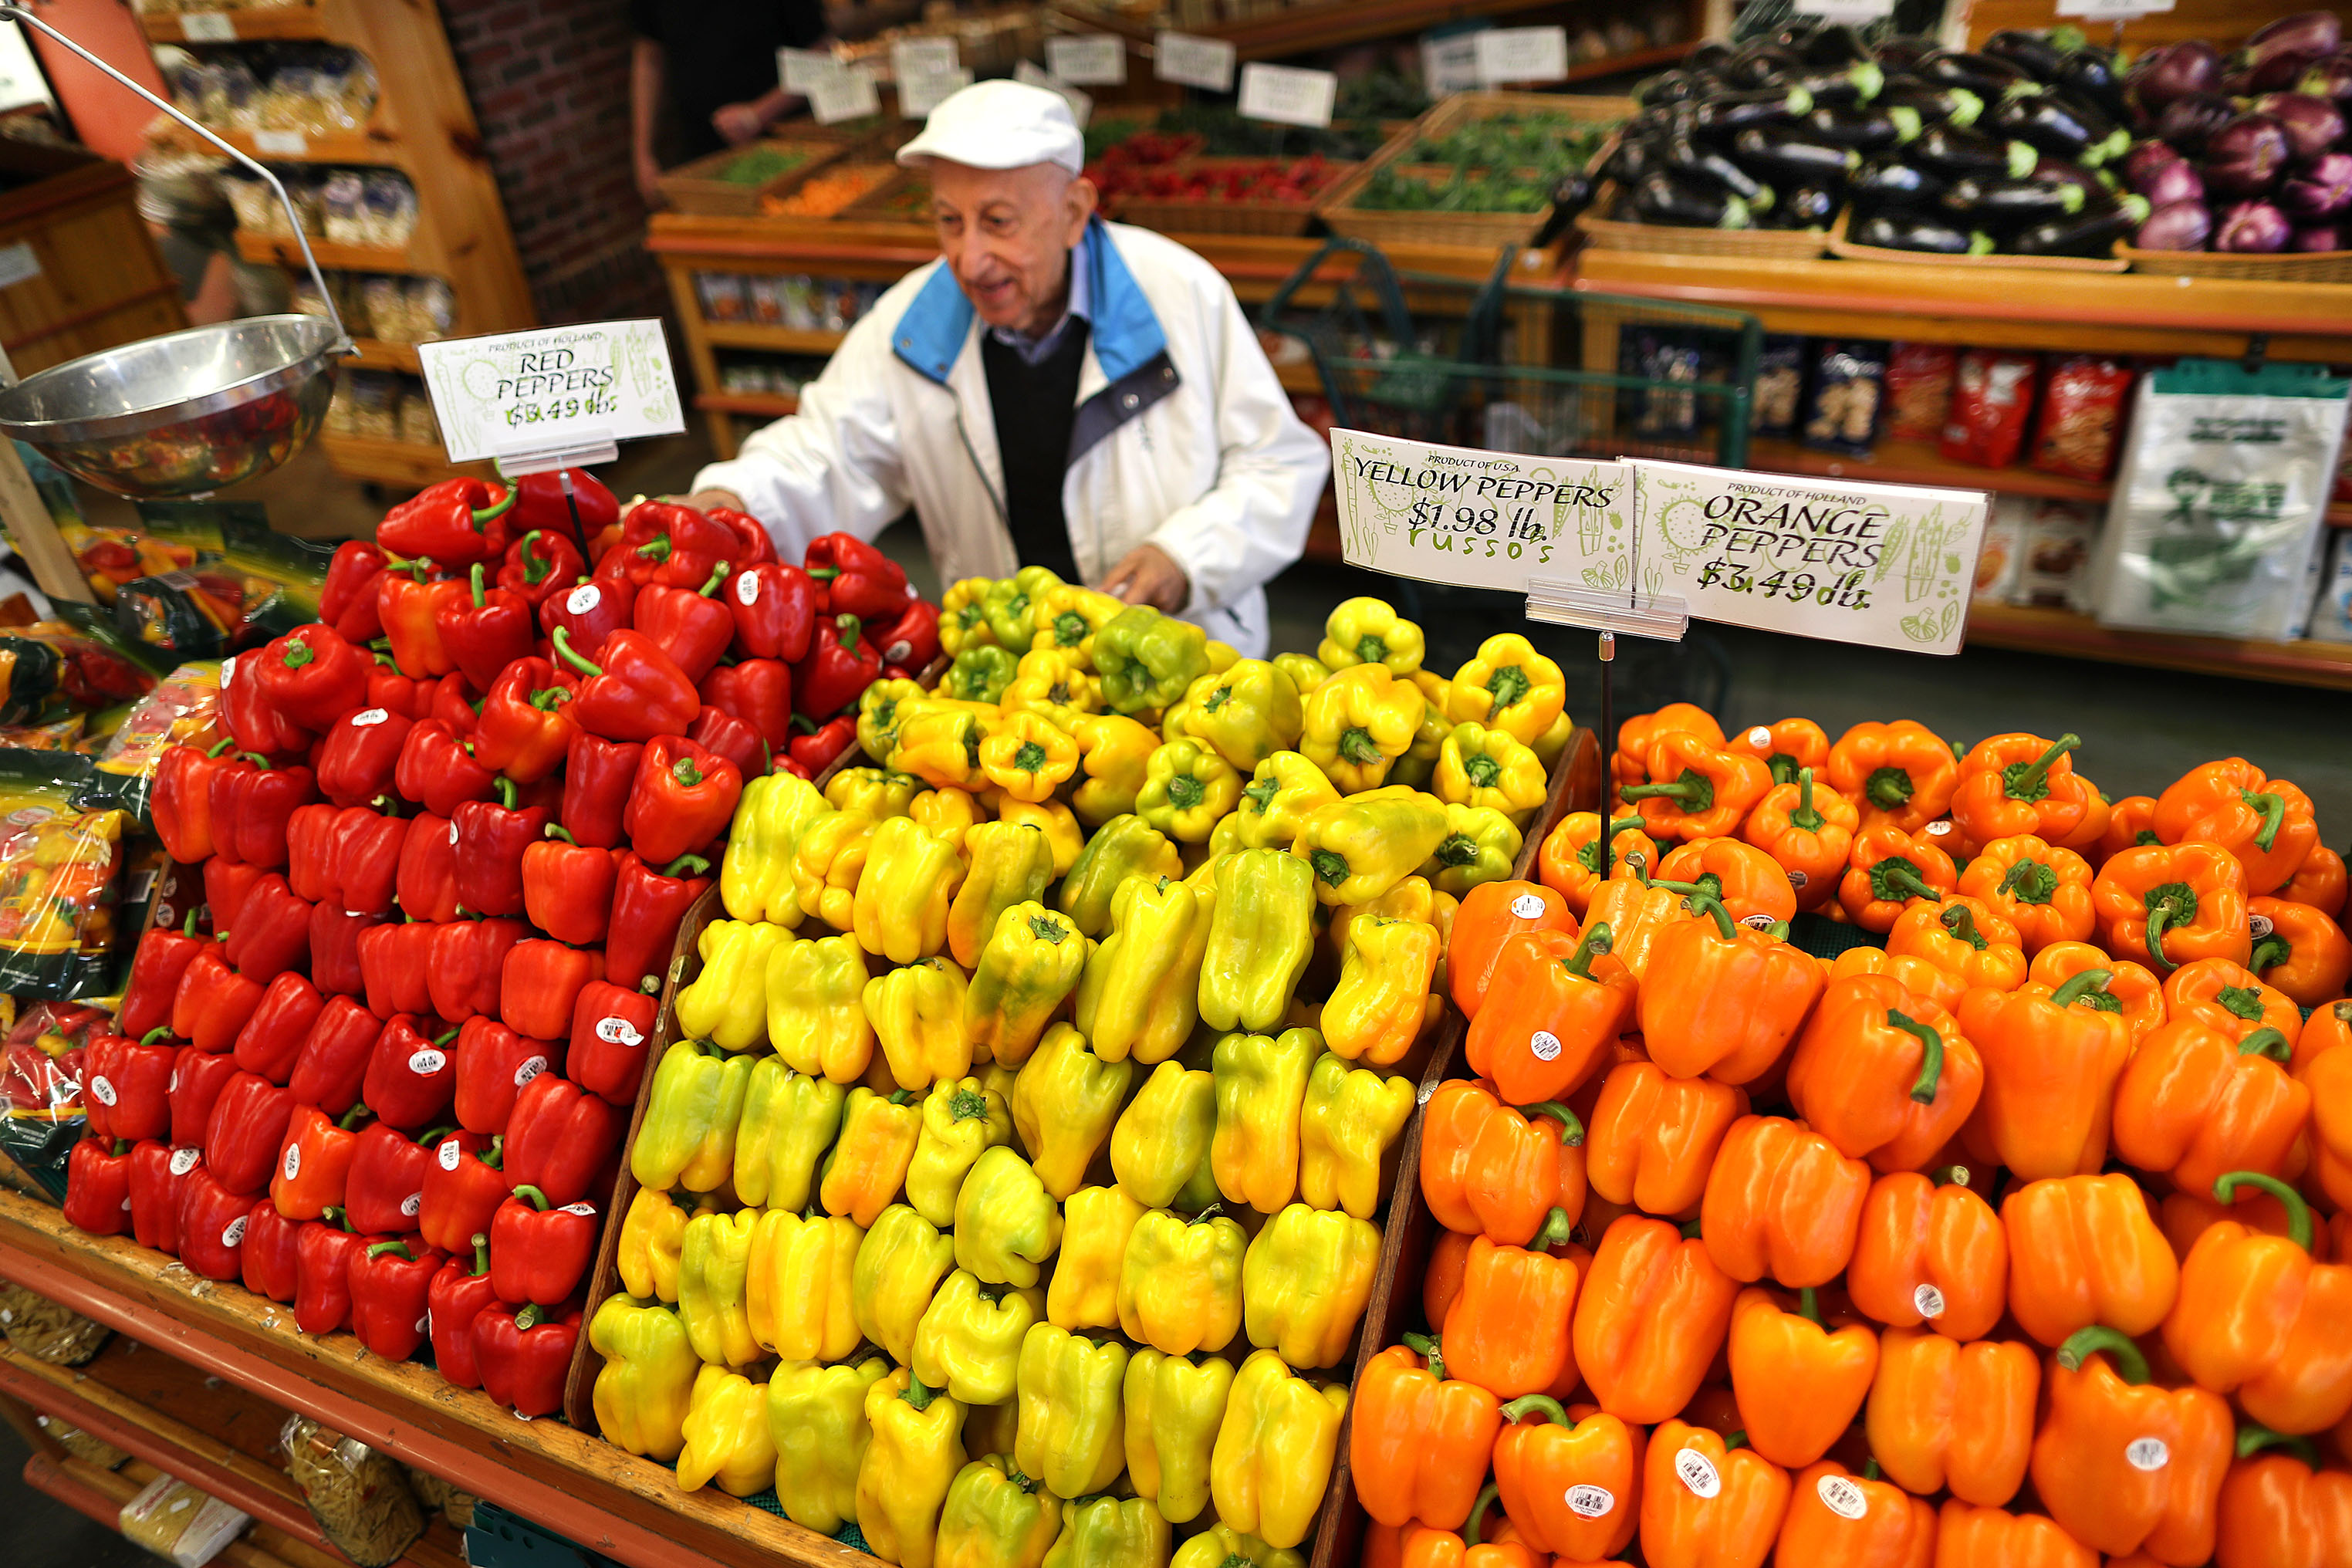 Customer Ara Chamlian from Watertown picked some peppers at Russo's in 2019.